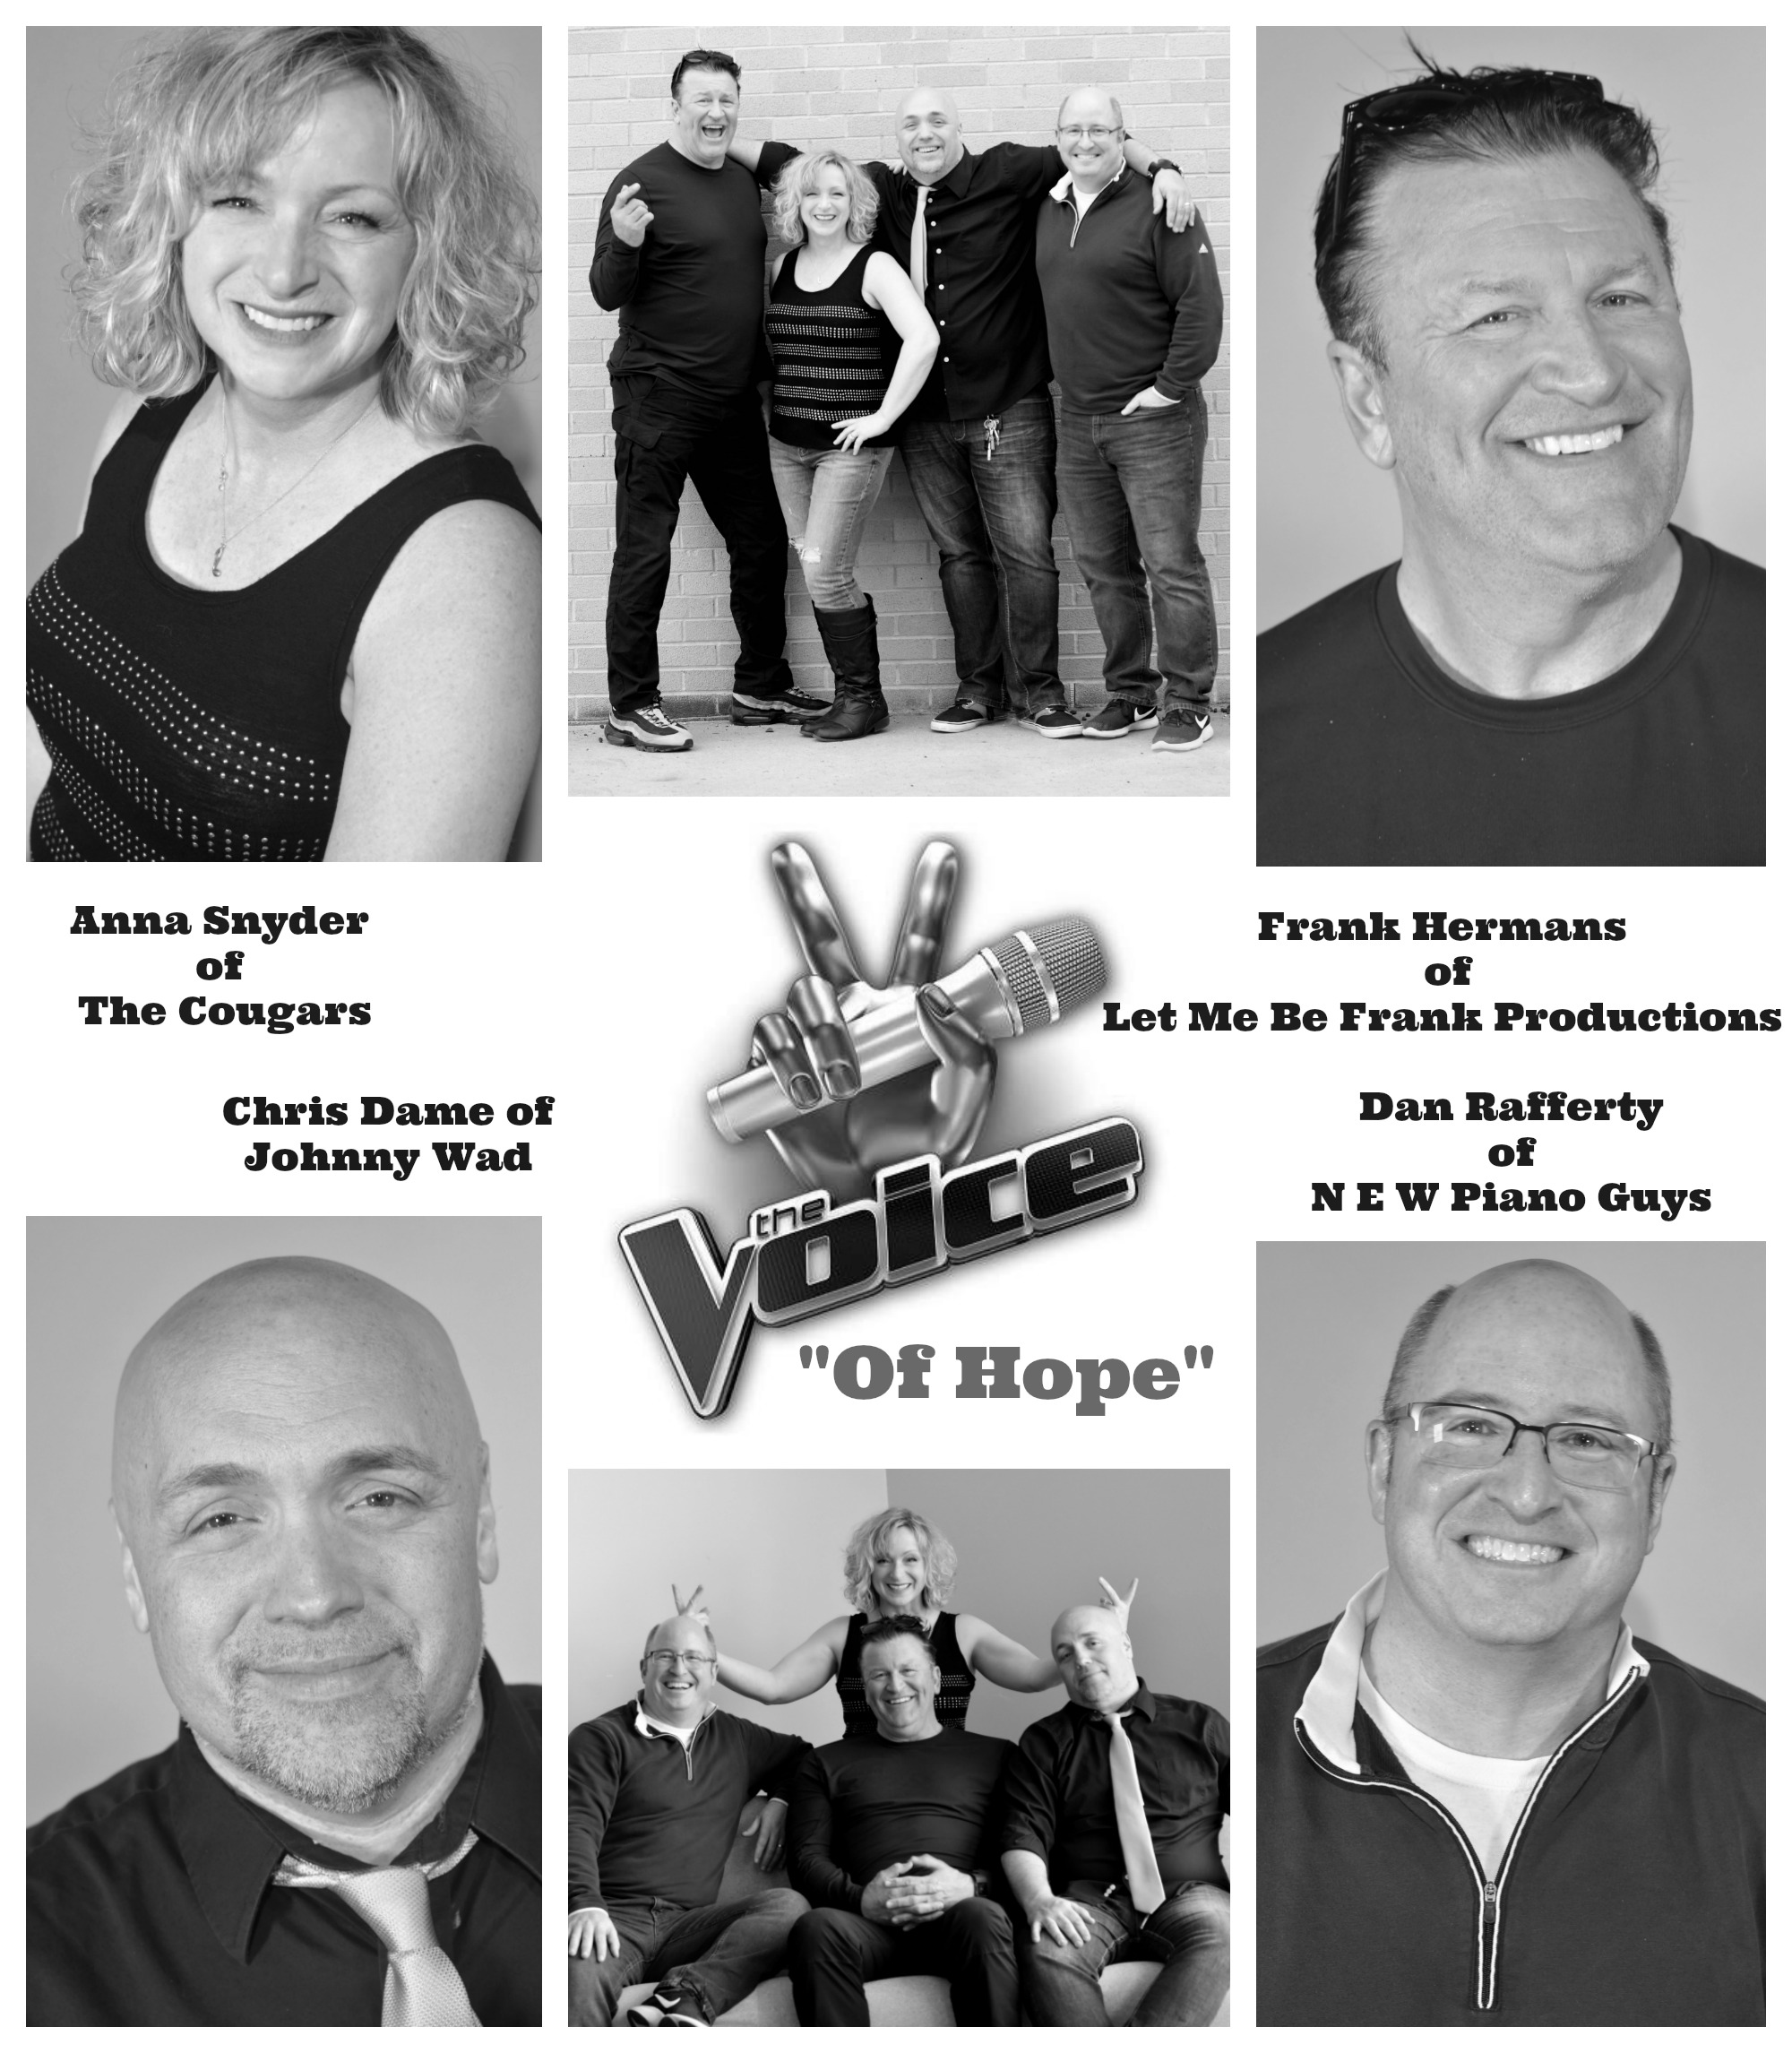 The Voice of Hope Photo